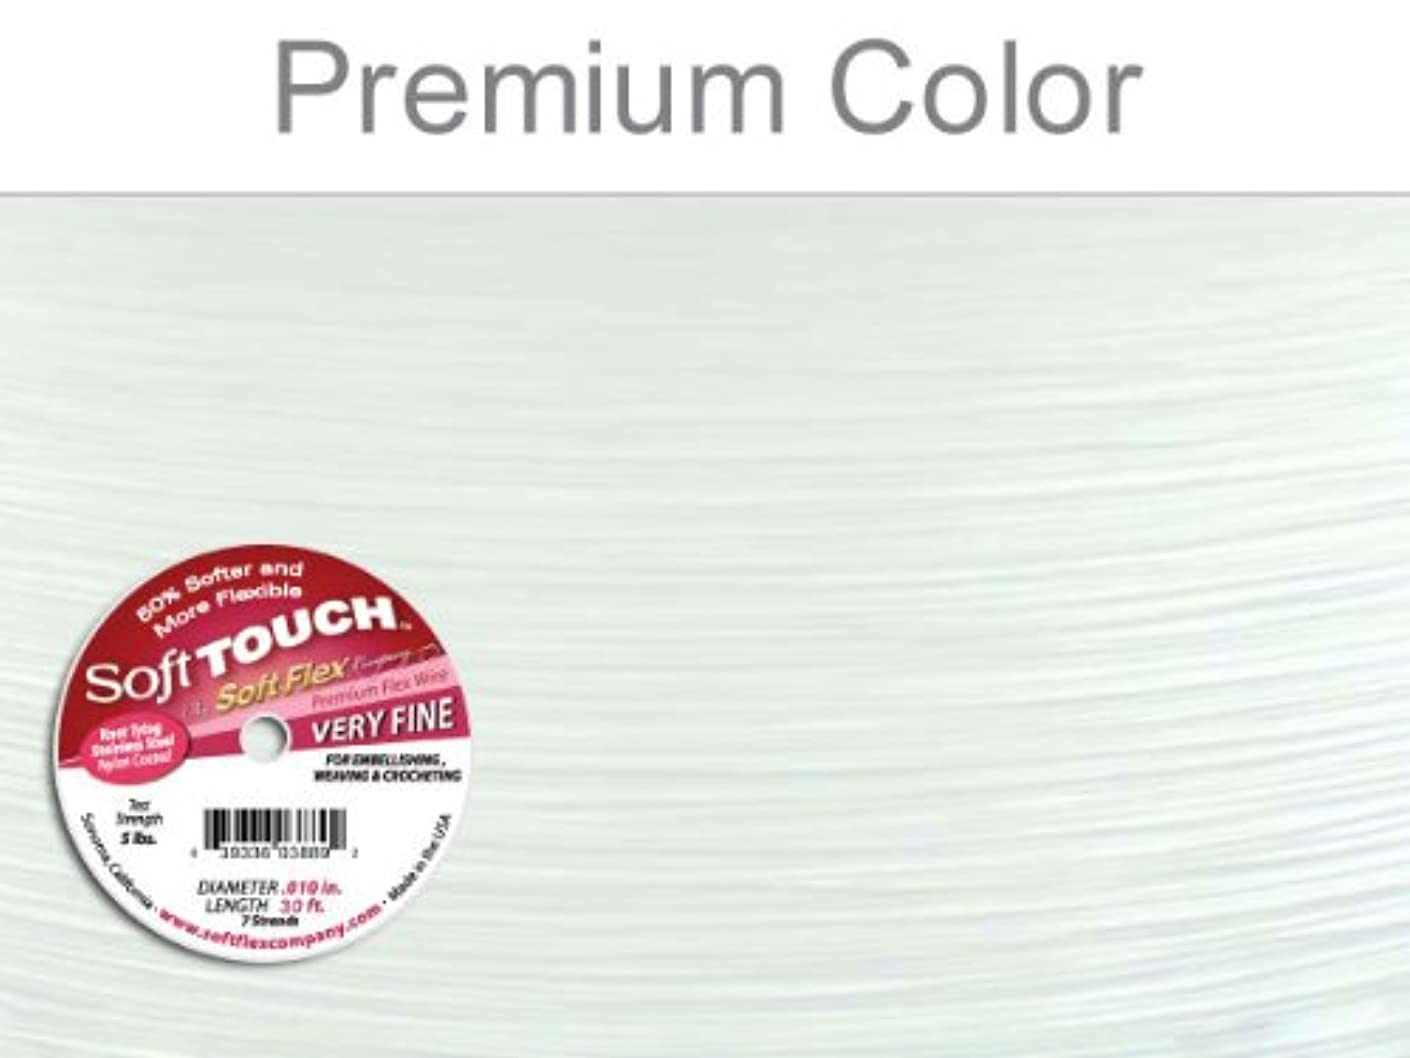 Soft Touch .01 Very Fine White Premium Flexible Beading Wire 30 Ft.